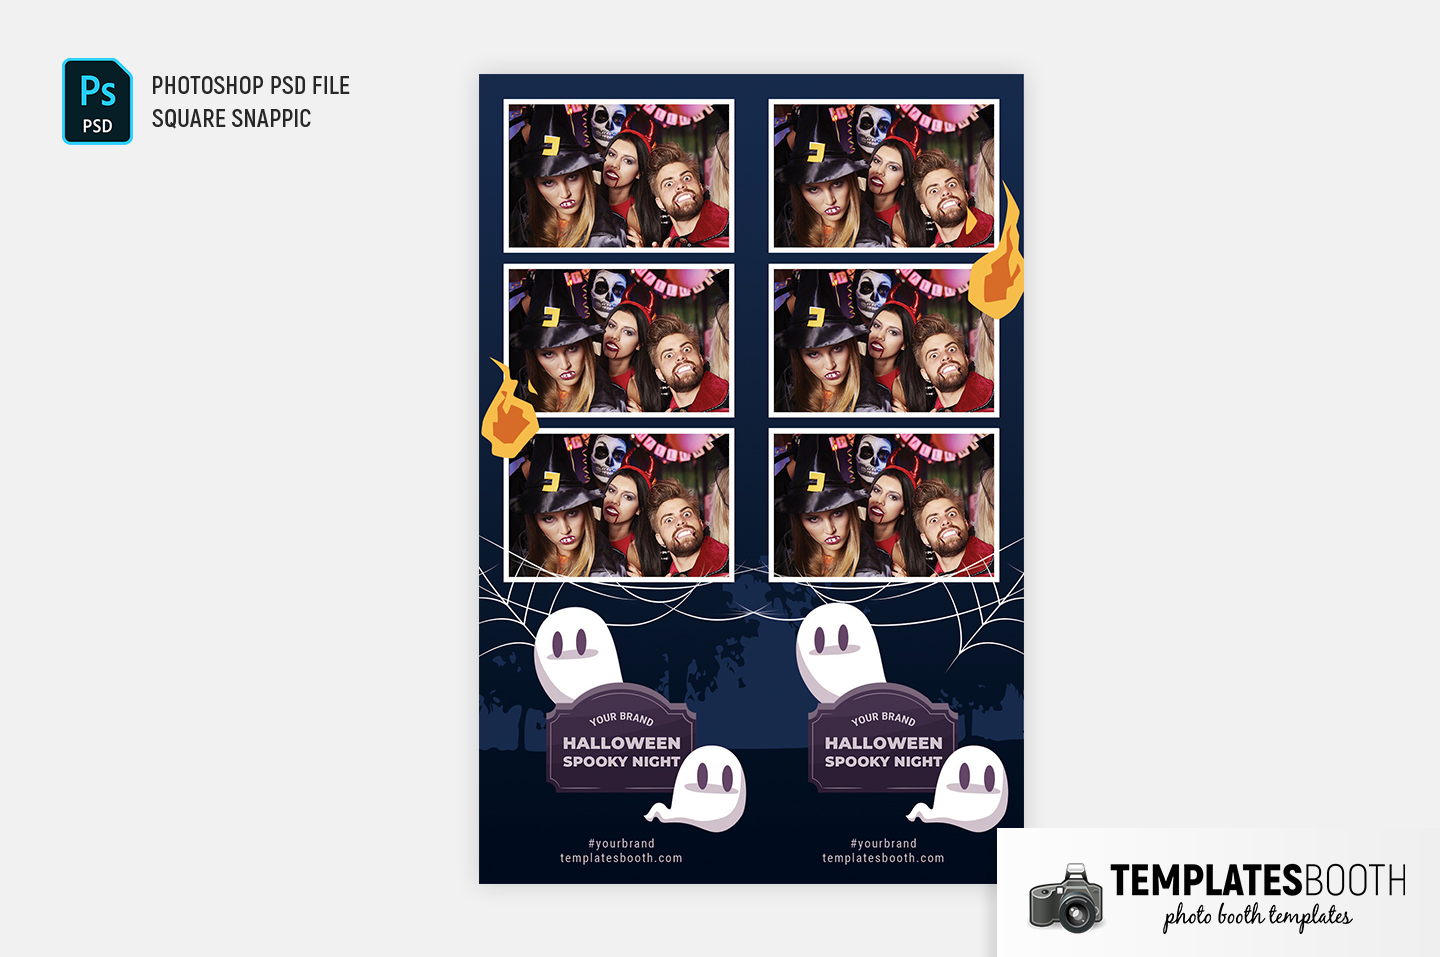 Halloween Spooky Night Photo Booth Template (2x6 photo strip)